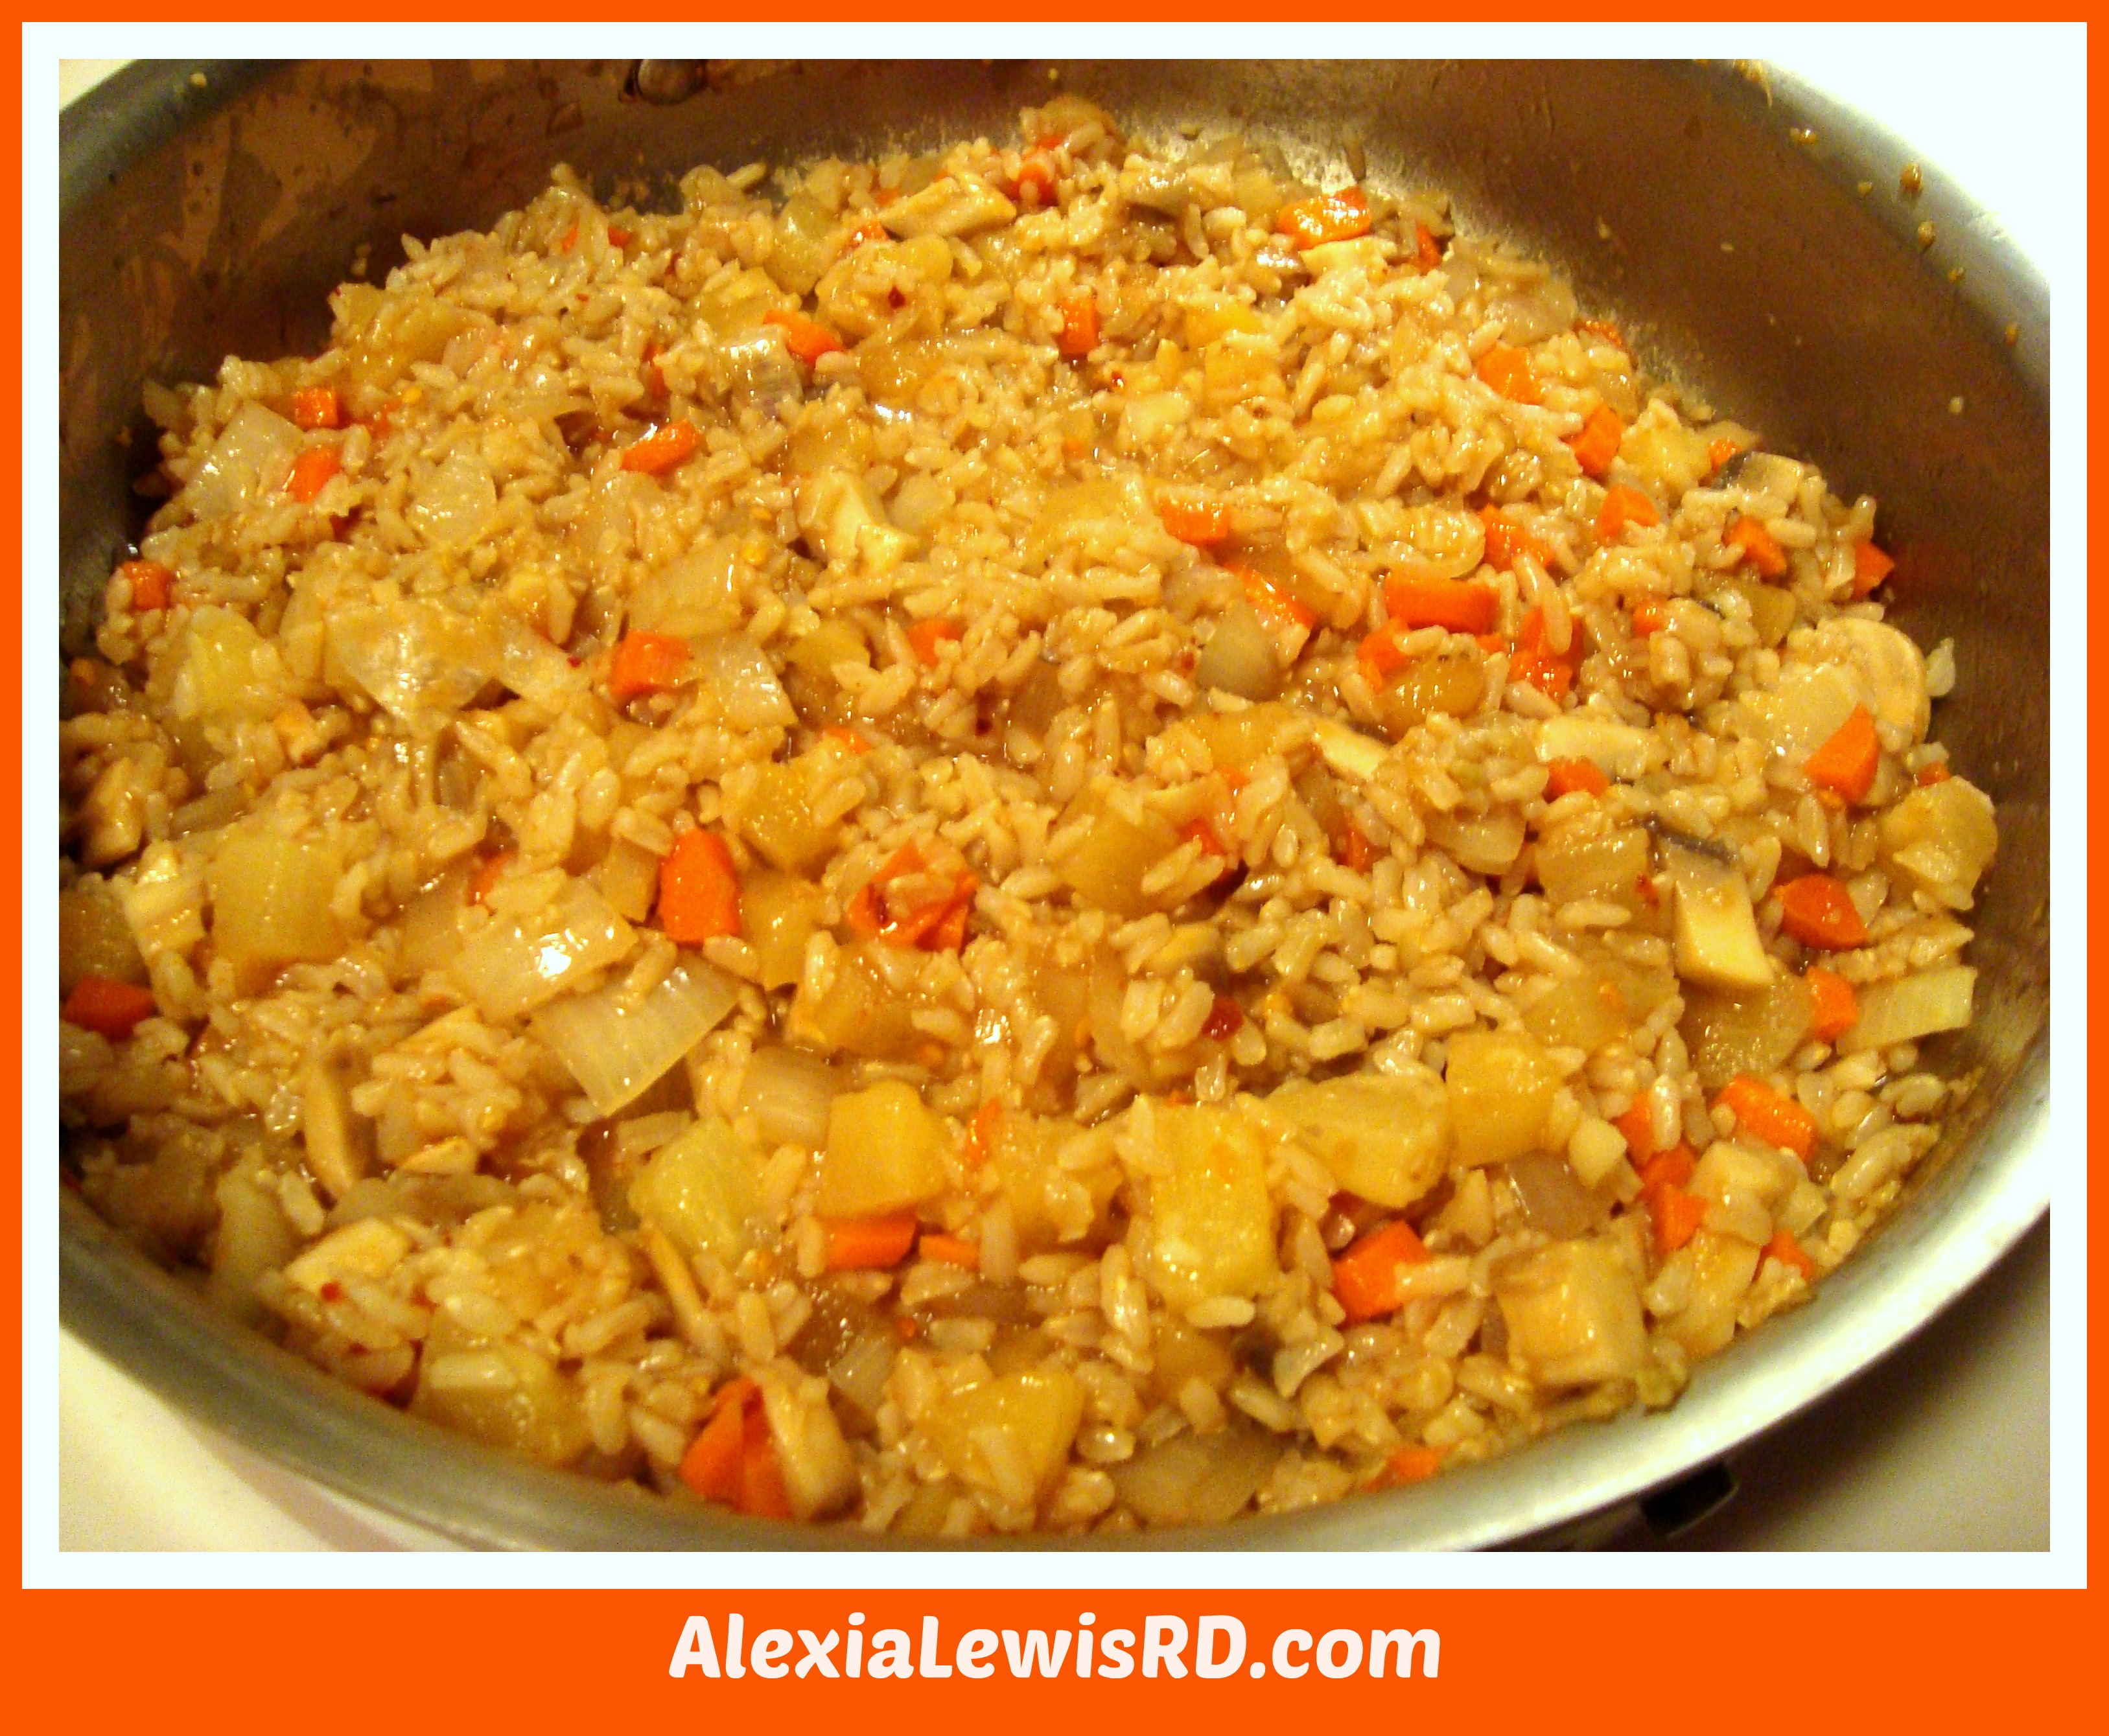 ... Plan: Baked Panko Shrimp and Pineapple Fried Rice | Alexia Lewis R.D